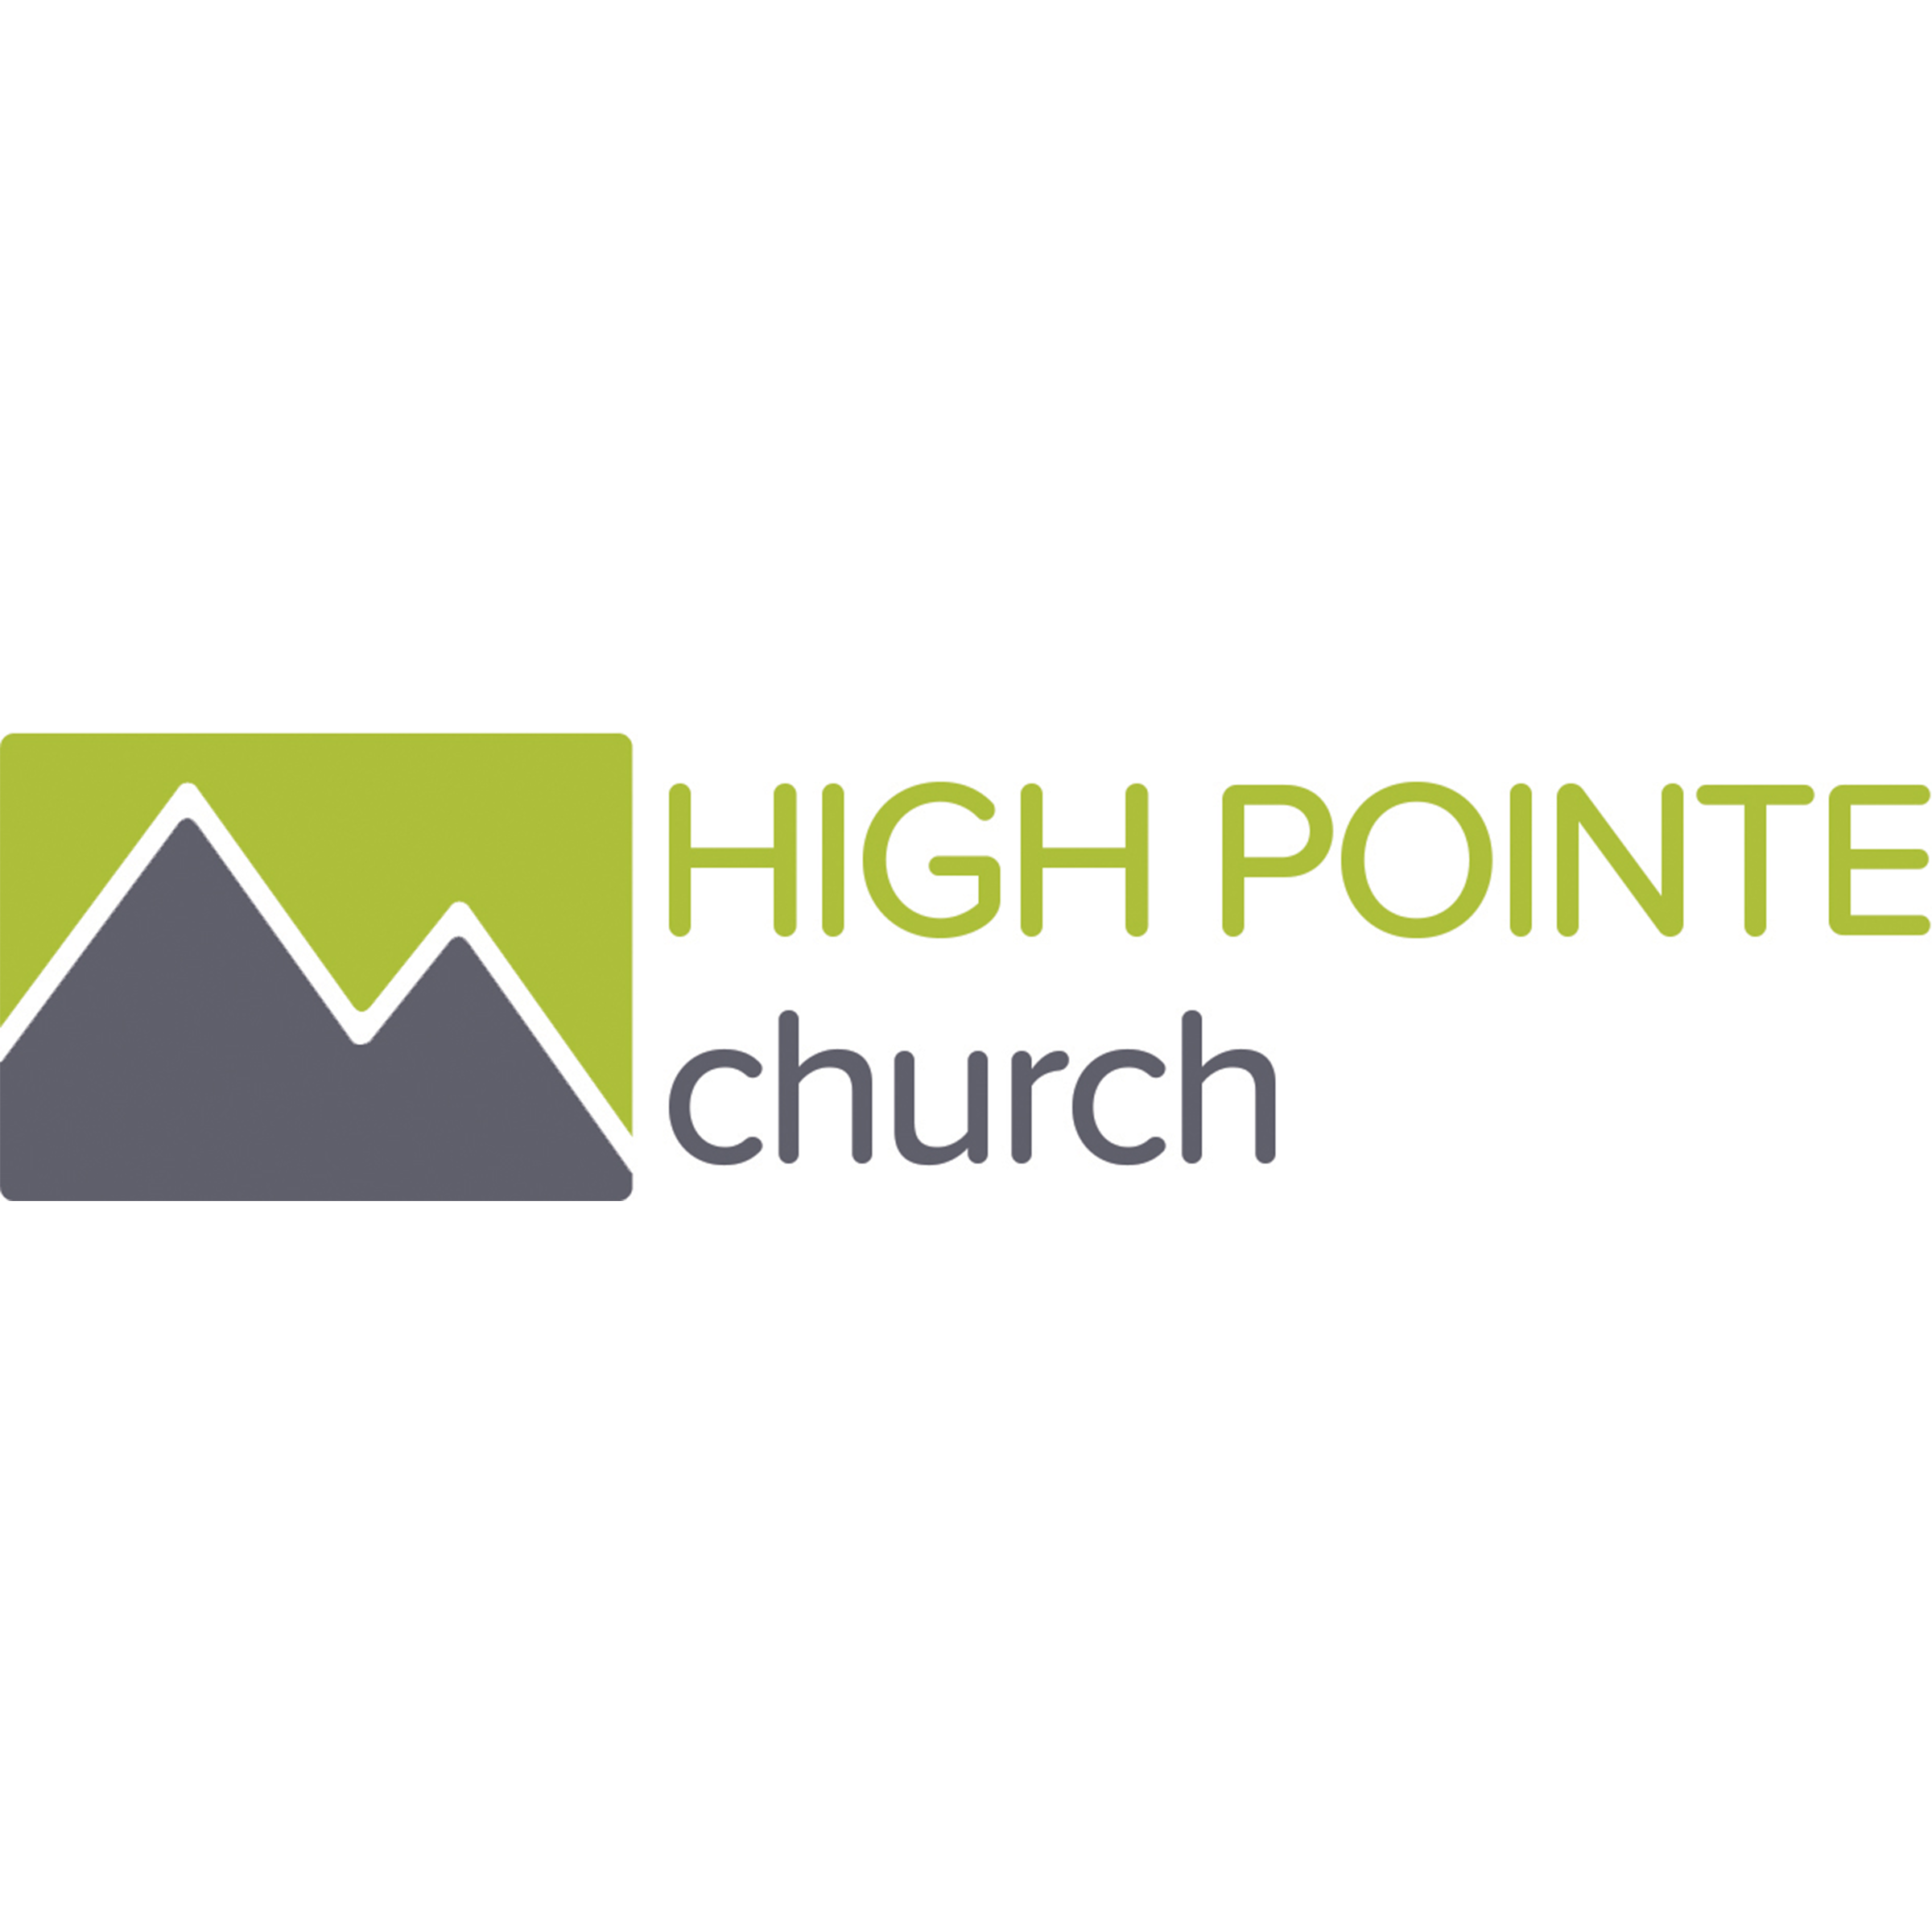 High Pointe Church